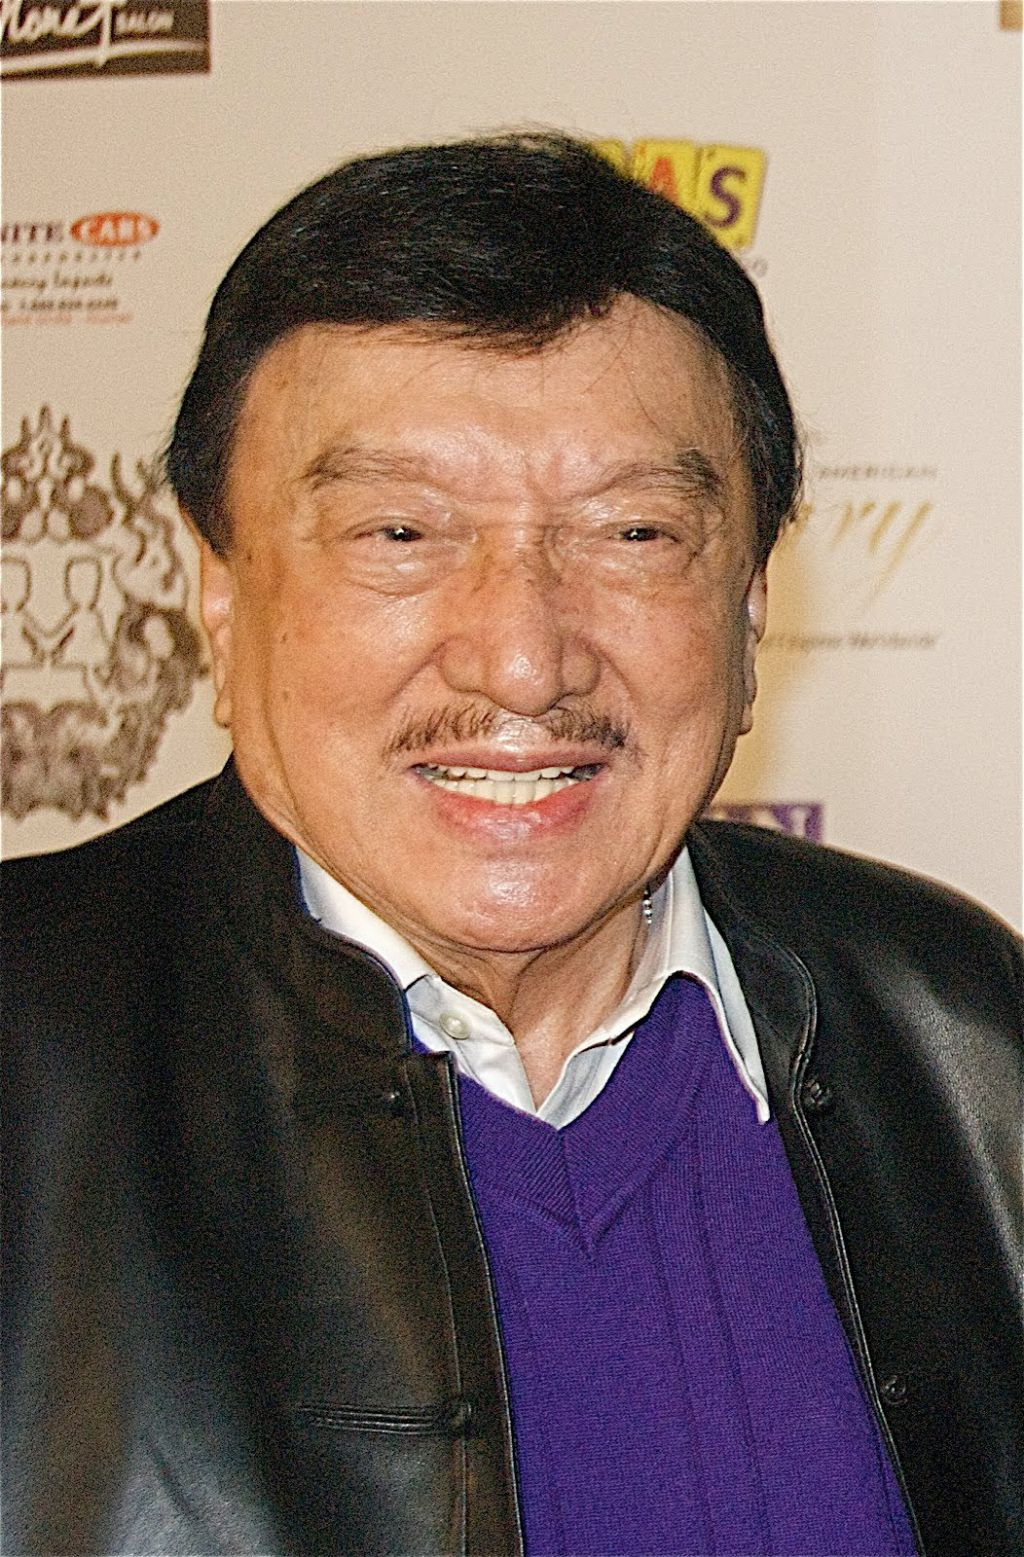 Rodolfo Vera Quizon, Sr. (born July 25, 1928), known by his screen name Dolphy, is a Filipino comedian-actor in the Philippines. - ce894a0742e86fc262fb22e6fa88f2bd8dbaee476488a96f9e2b0963b83feb83_large